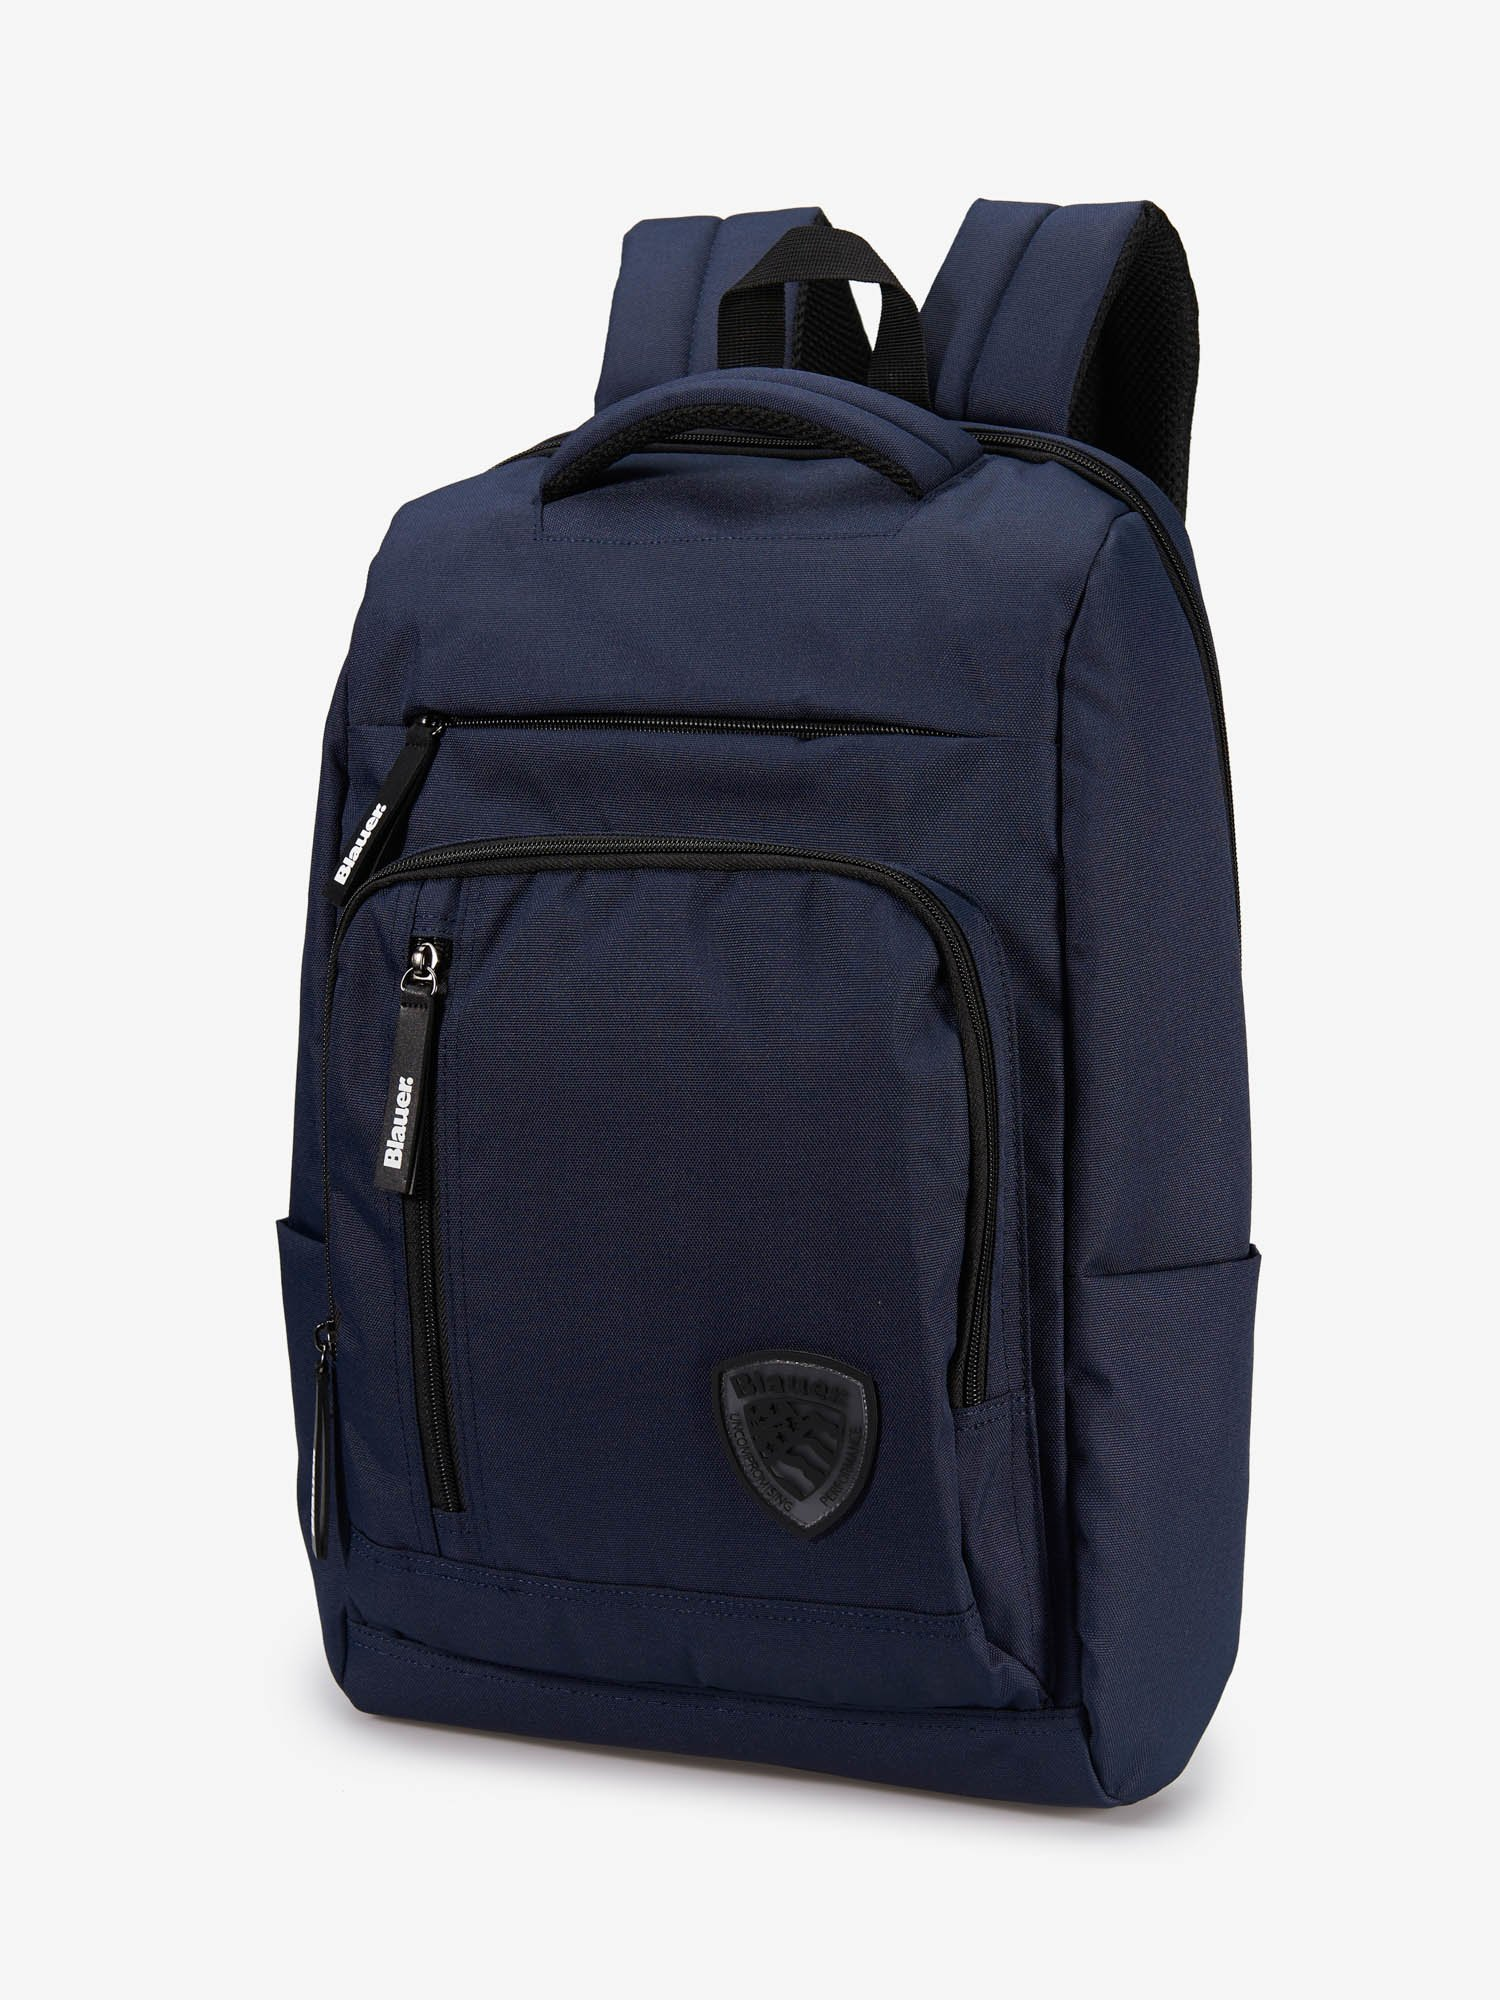 THREE ZIPPER BACKPACK - Blauer